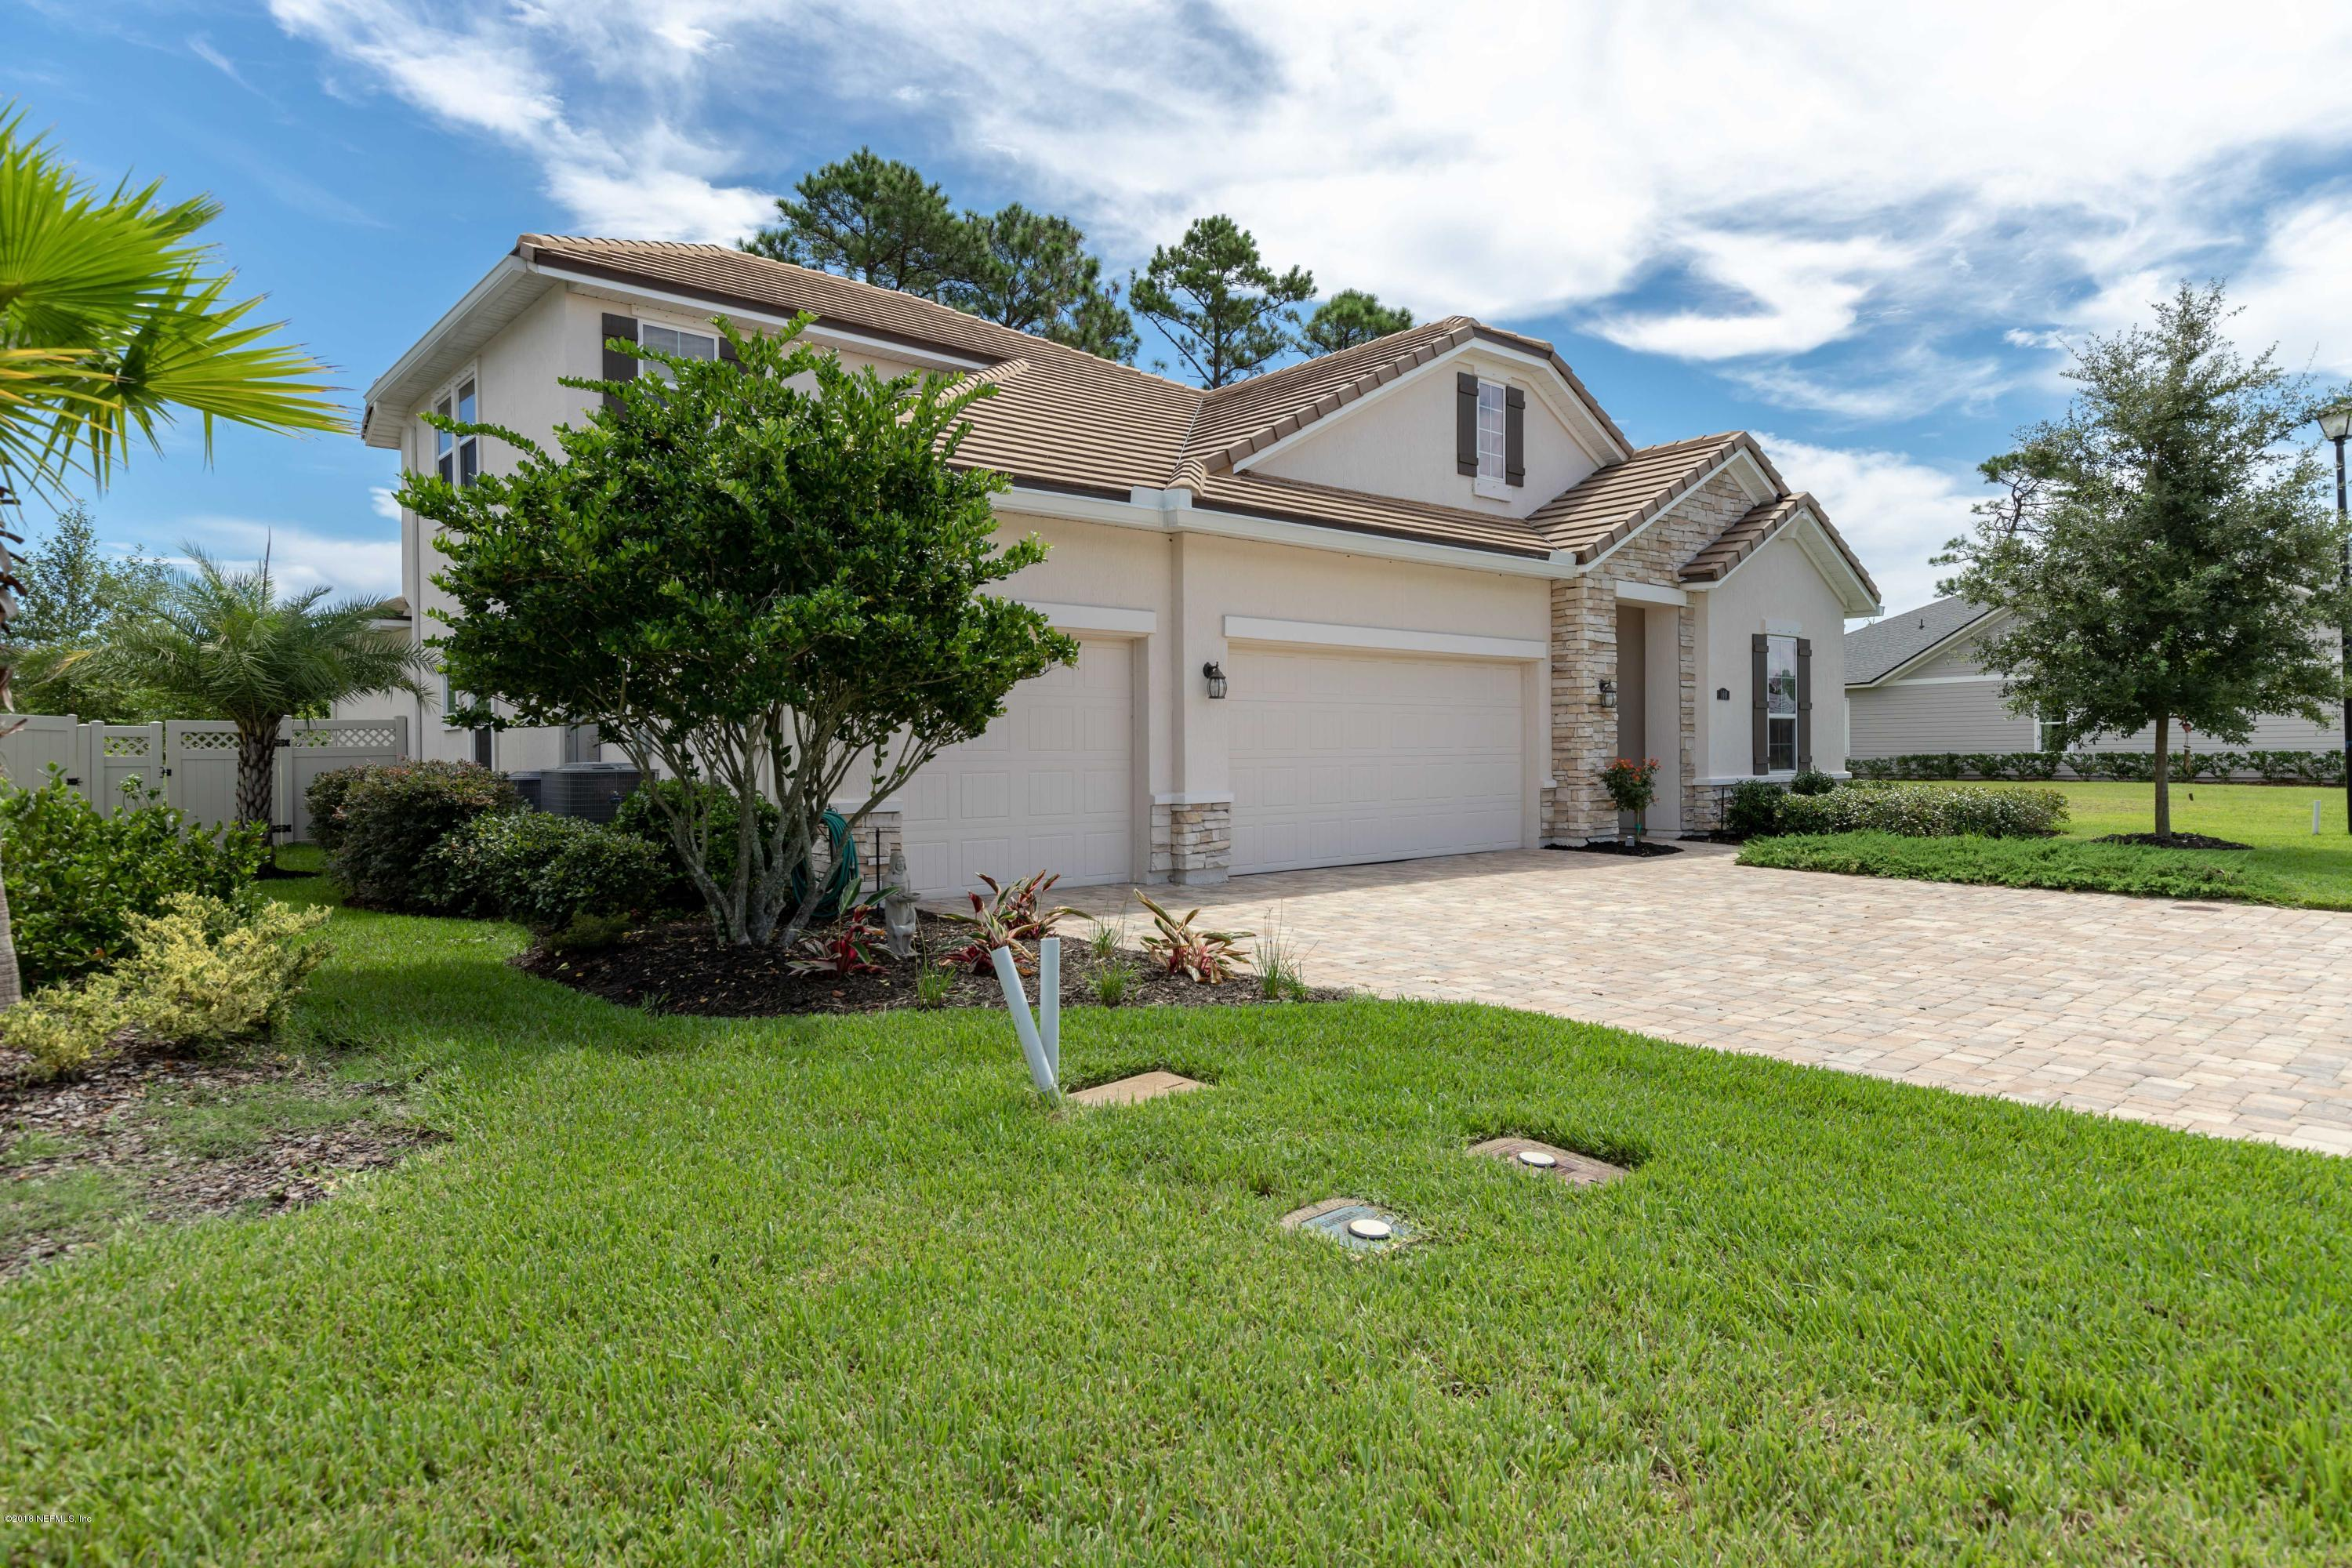 100 PINTORESCO, ST AUGUSTINE, FLORIDA 32095, 4 Bedrooms Bedrooms, ,4 BathroomsBathrooms,Residential - single family,For sale,PINTORESCO,953525